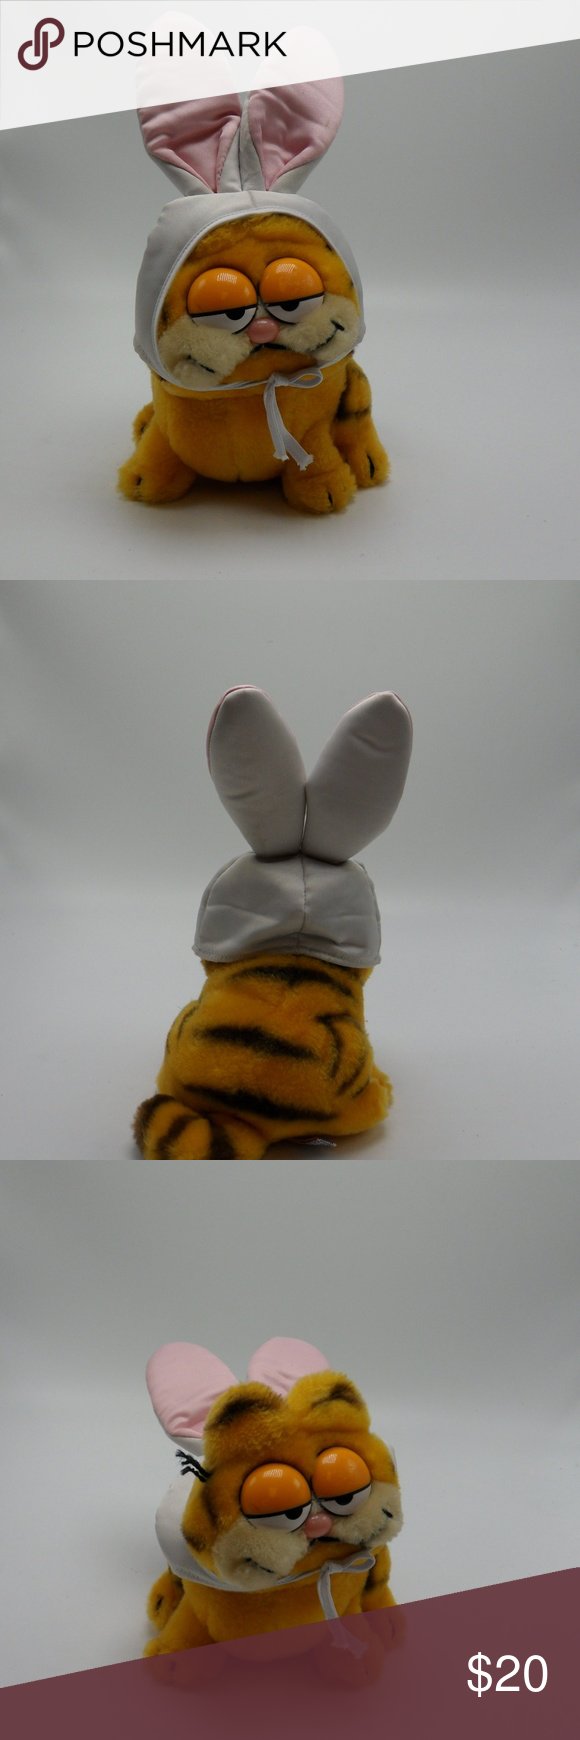 Genuine Vintage 1981 Garfield Easter Bunny Plush Genuine Vintage 1981 Garfield Easter Bunny Plush Dakin Toy Cat In great shape for its age.  It was well cared for.  With the bunny ears down it stands 6 1/2 inches tall, and 11 inches tall when ears are up! Very cute  Have a couple others you can bundle and purchase together for better shipping!!! Other #bunnyplush Genuine Vintage 1981 Garfield Easter Bunny Plush Genuine Vintage 1981 Garfield Easter Bunny Plush Dakin Toy Cat In great shape for its #bunnyplush